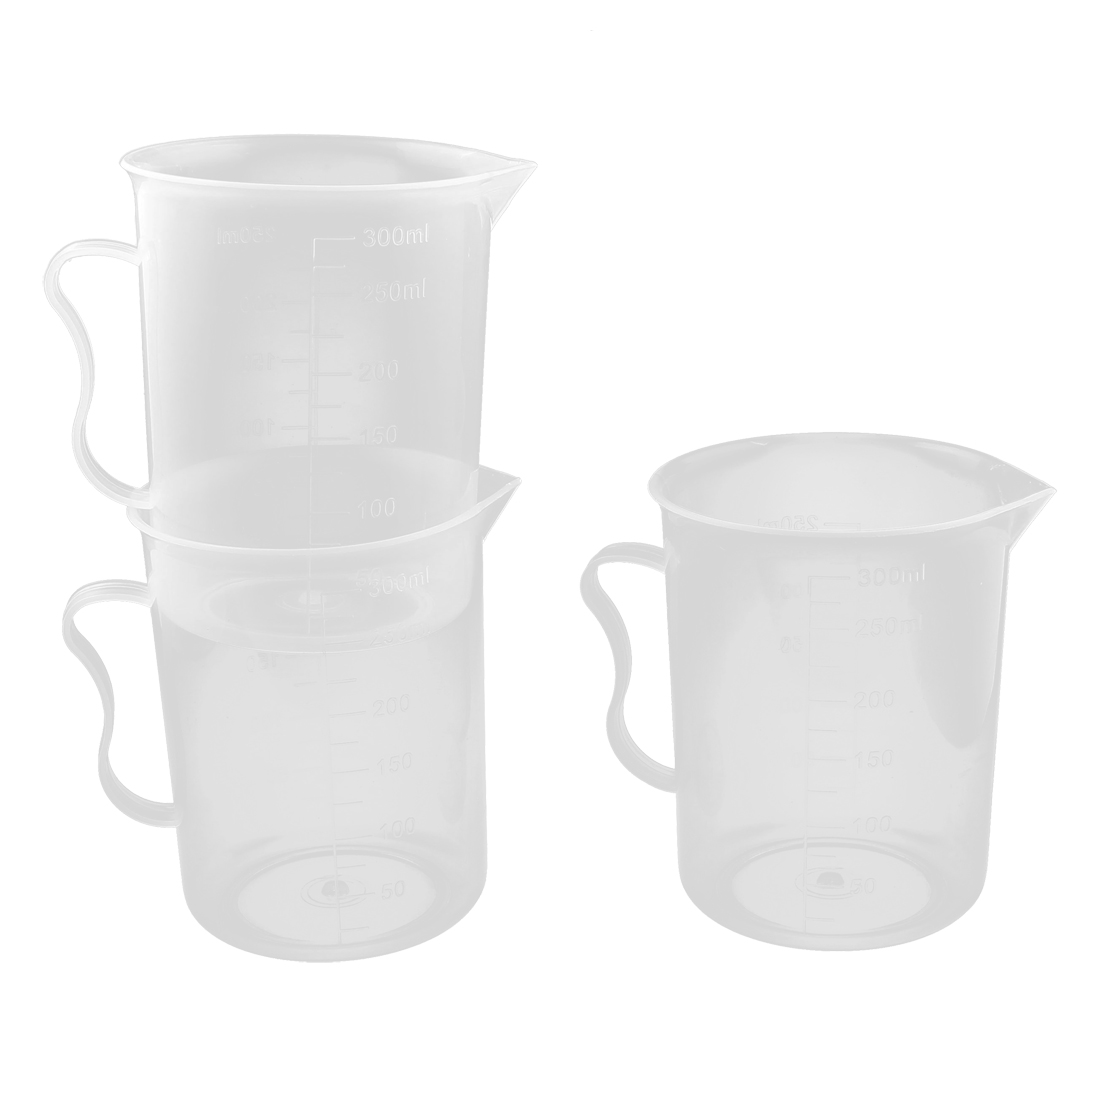 Lab Clear Plastic Beaker Graduated Measuring Cups Tools Container 3pcs